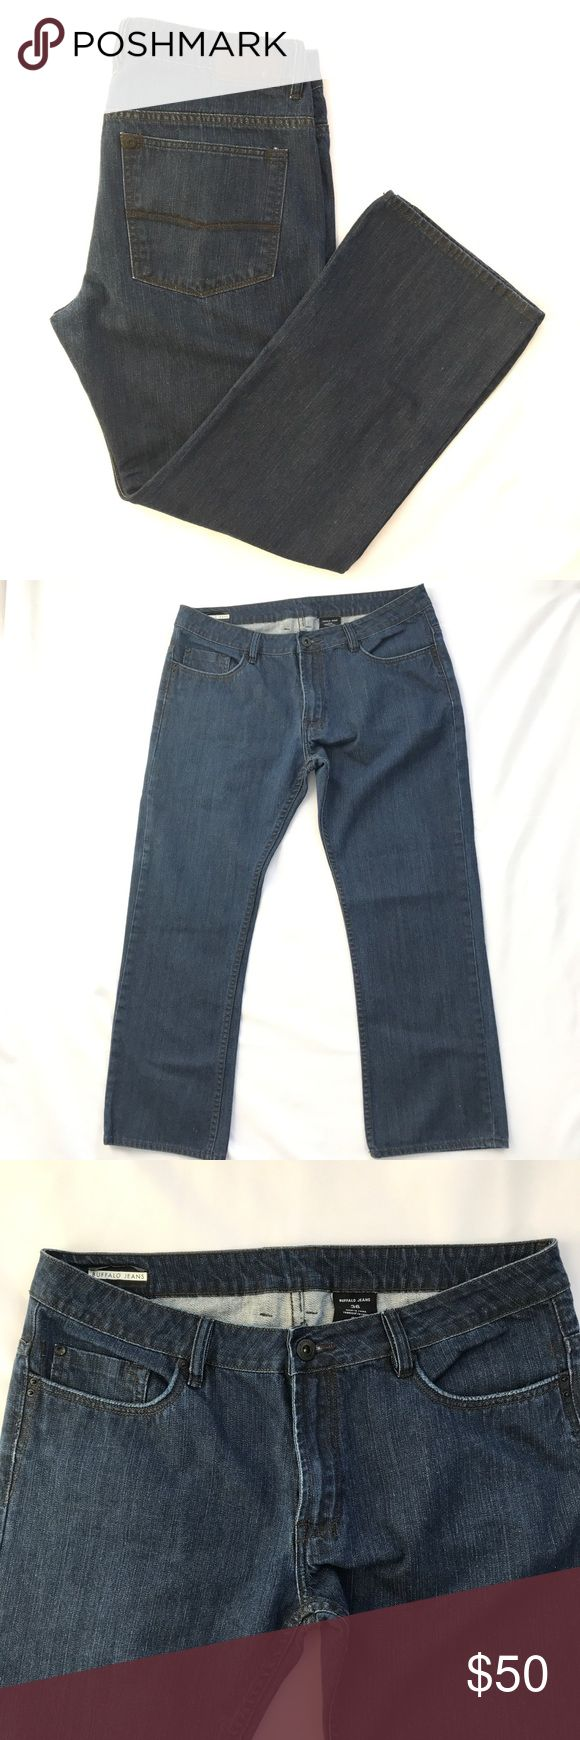 Buffalo Jeans Straight Leg Dark Wash Sz 36 Men's Buffalo Jeans in a dark wash with Straight Leg  Size 36  Inseam measurements to come! Buffalo Jeans Straight